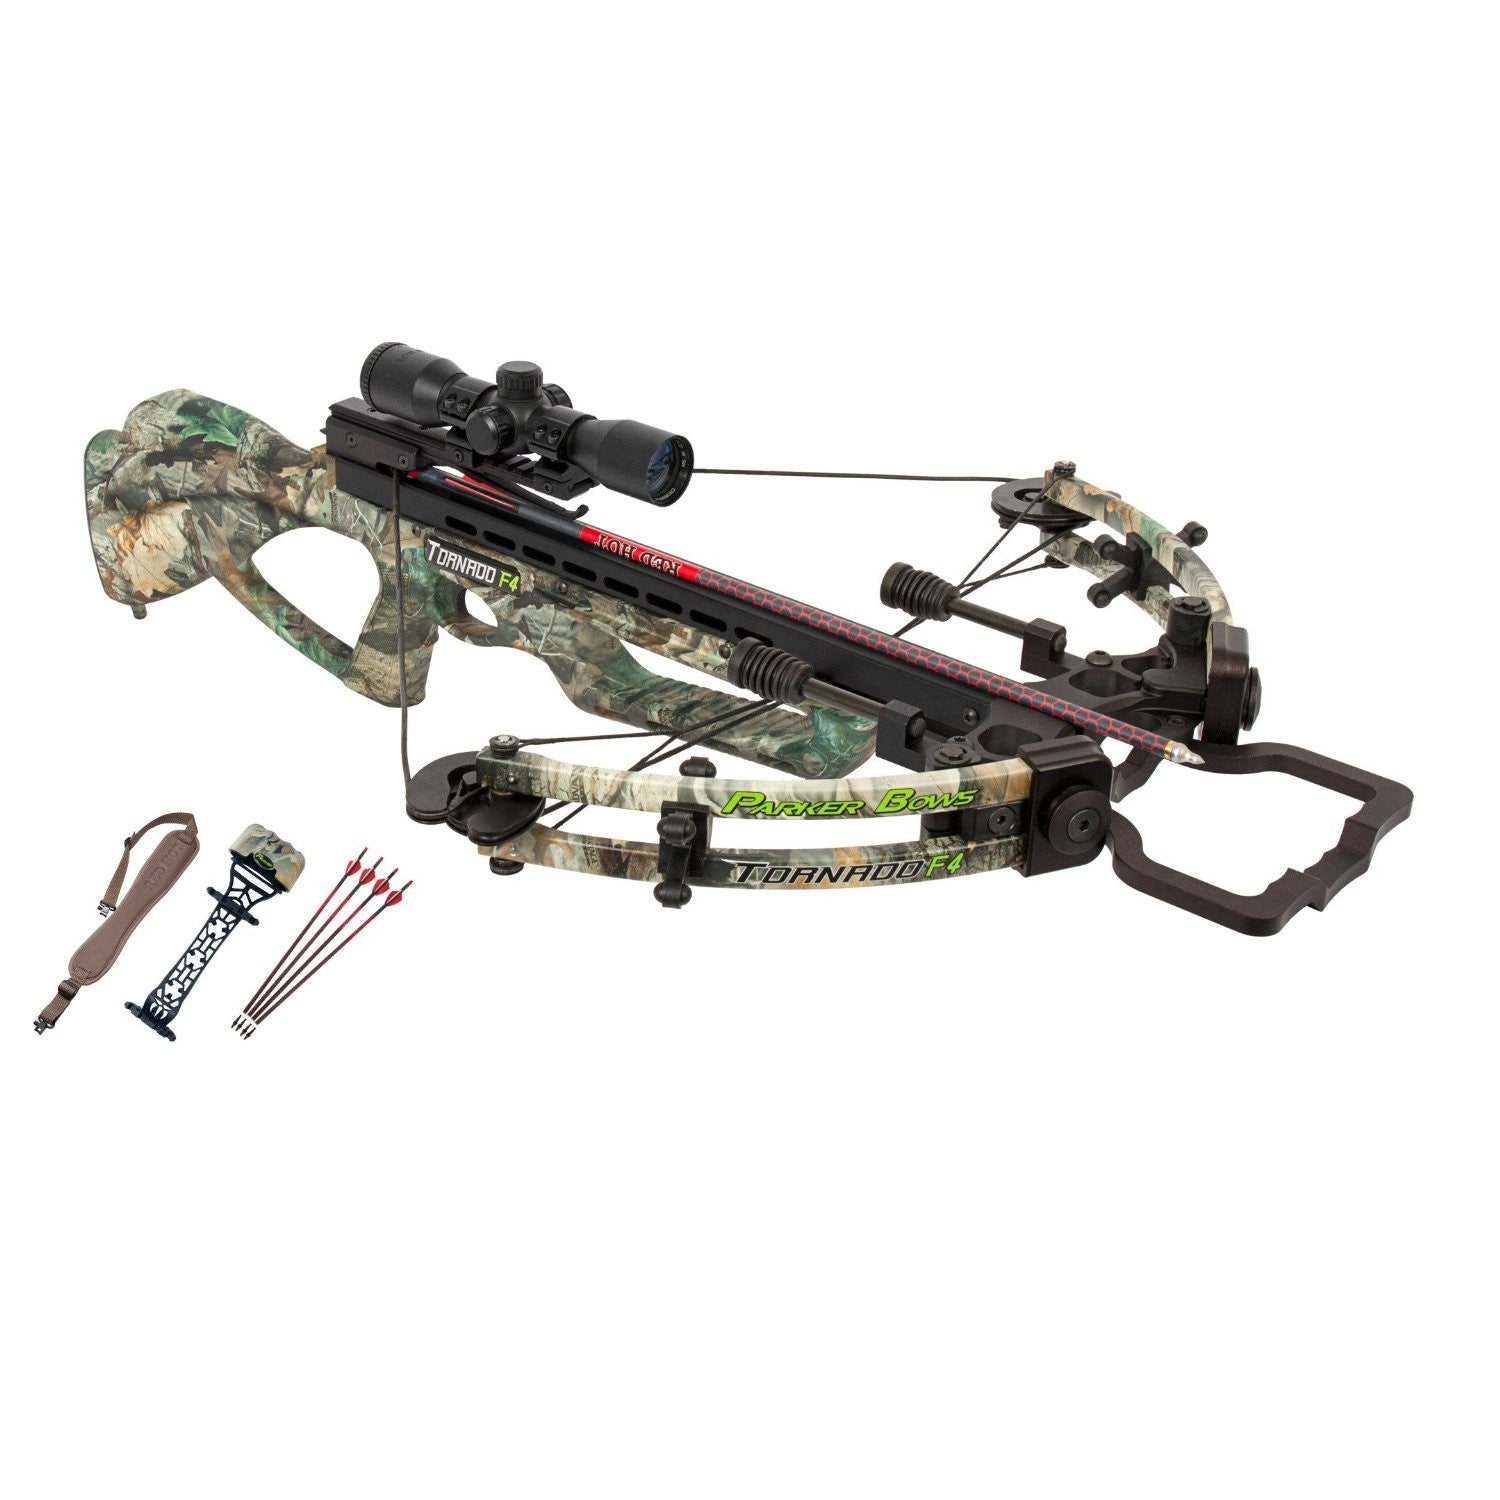 Parker Bows Crossbow Tornado F4 Perfect Storm Package - 3X Pin-Point